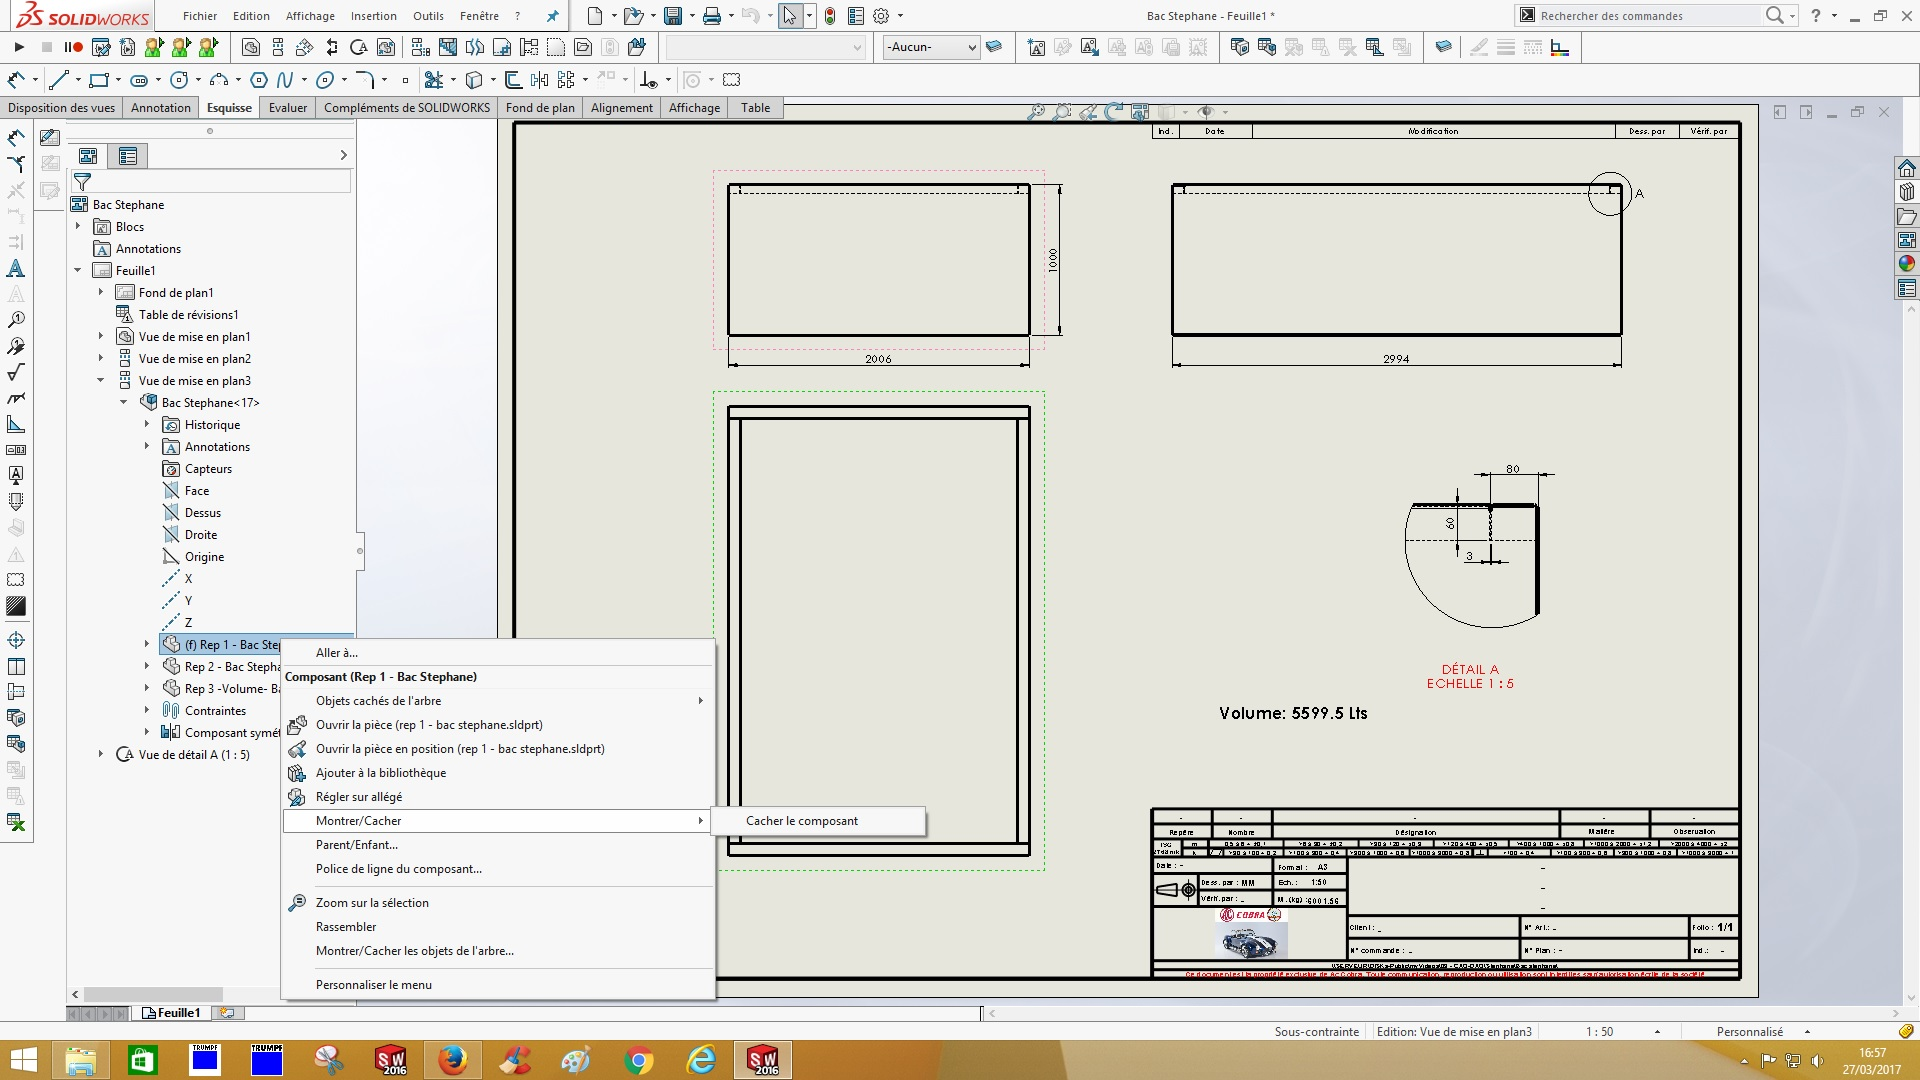 forum solidworks cacher montrer les corps sur mise en plan. Black Bedroom Furniture Sets. Home Design Ideas